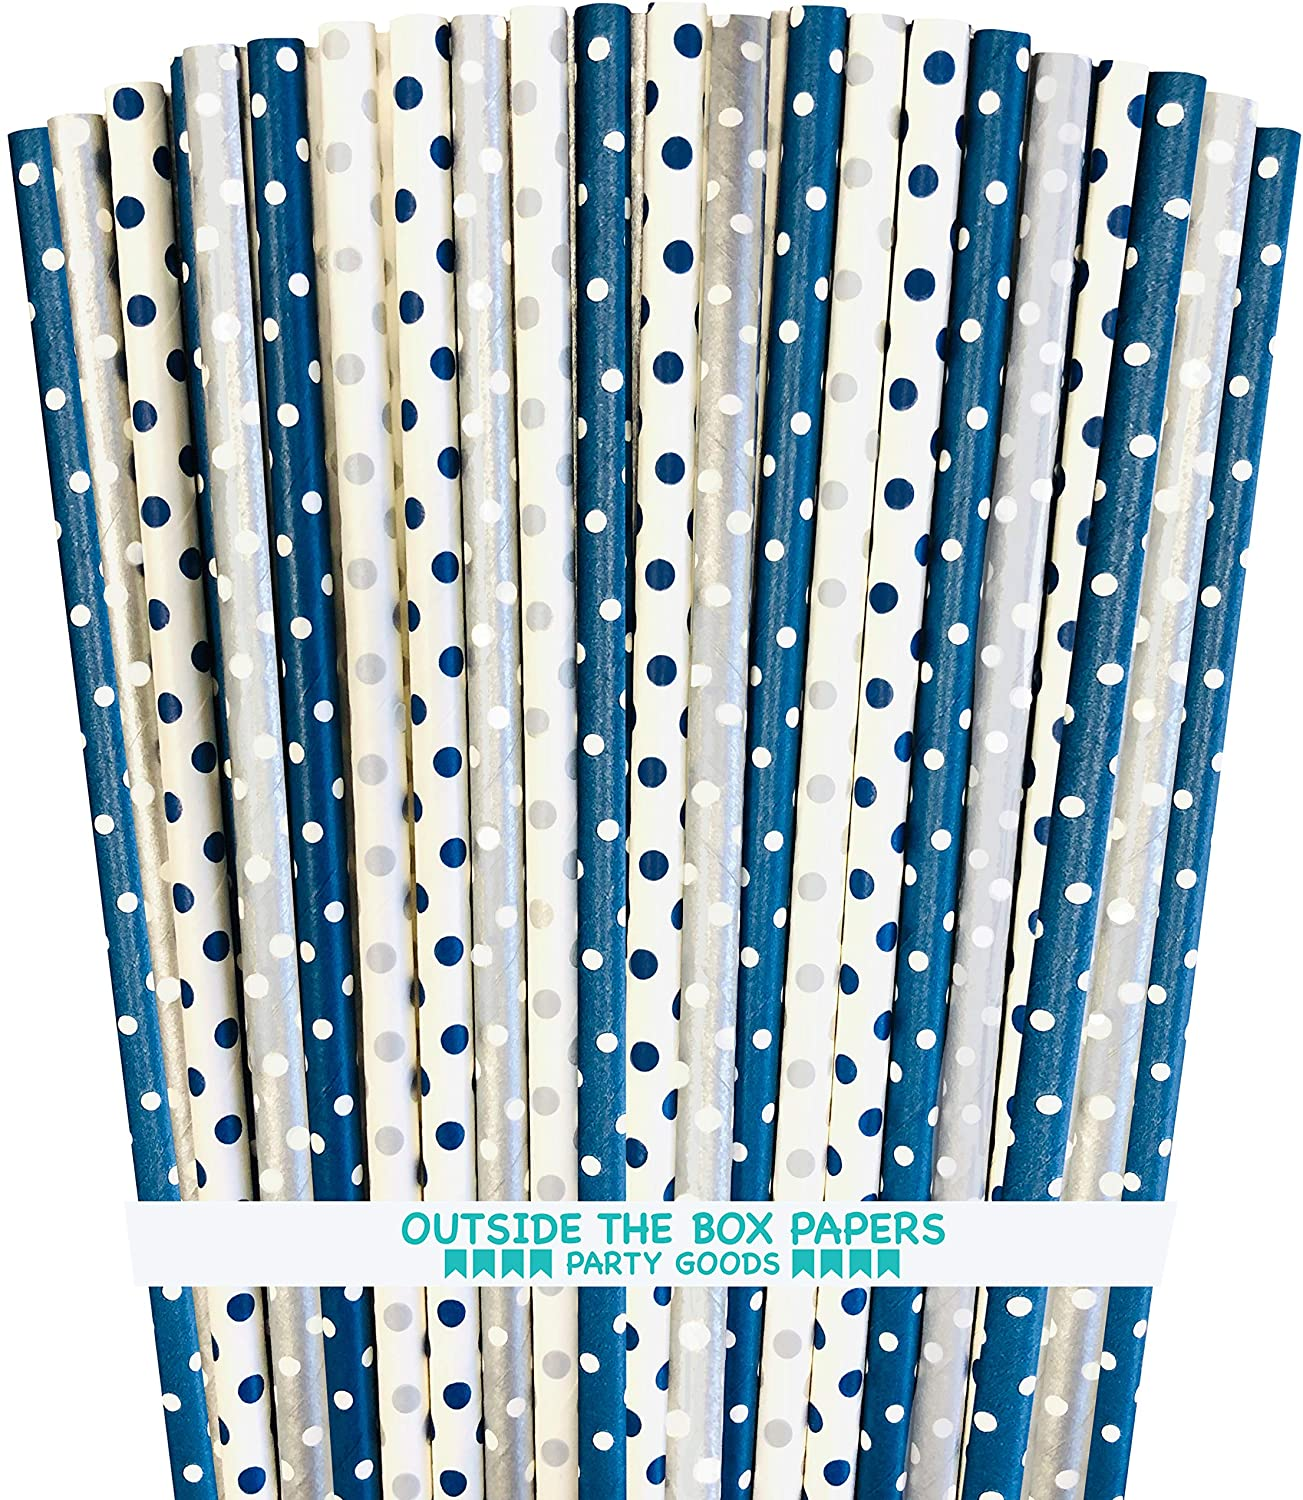 Navy Blue Silver and White Paper Straws - Polka Dot - 7.75 Inches - Pack of 100- Outside the Box Papers Brand